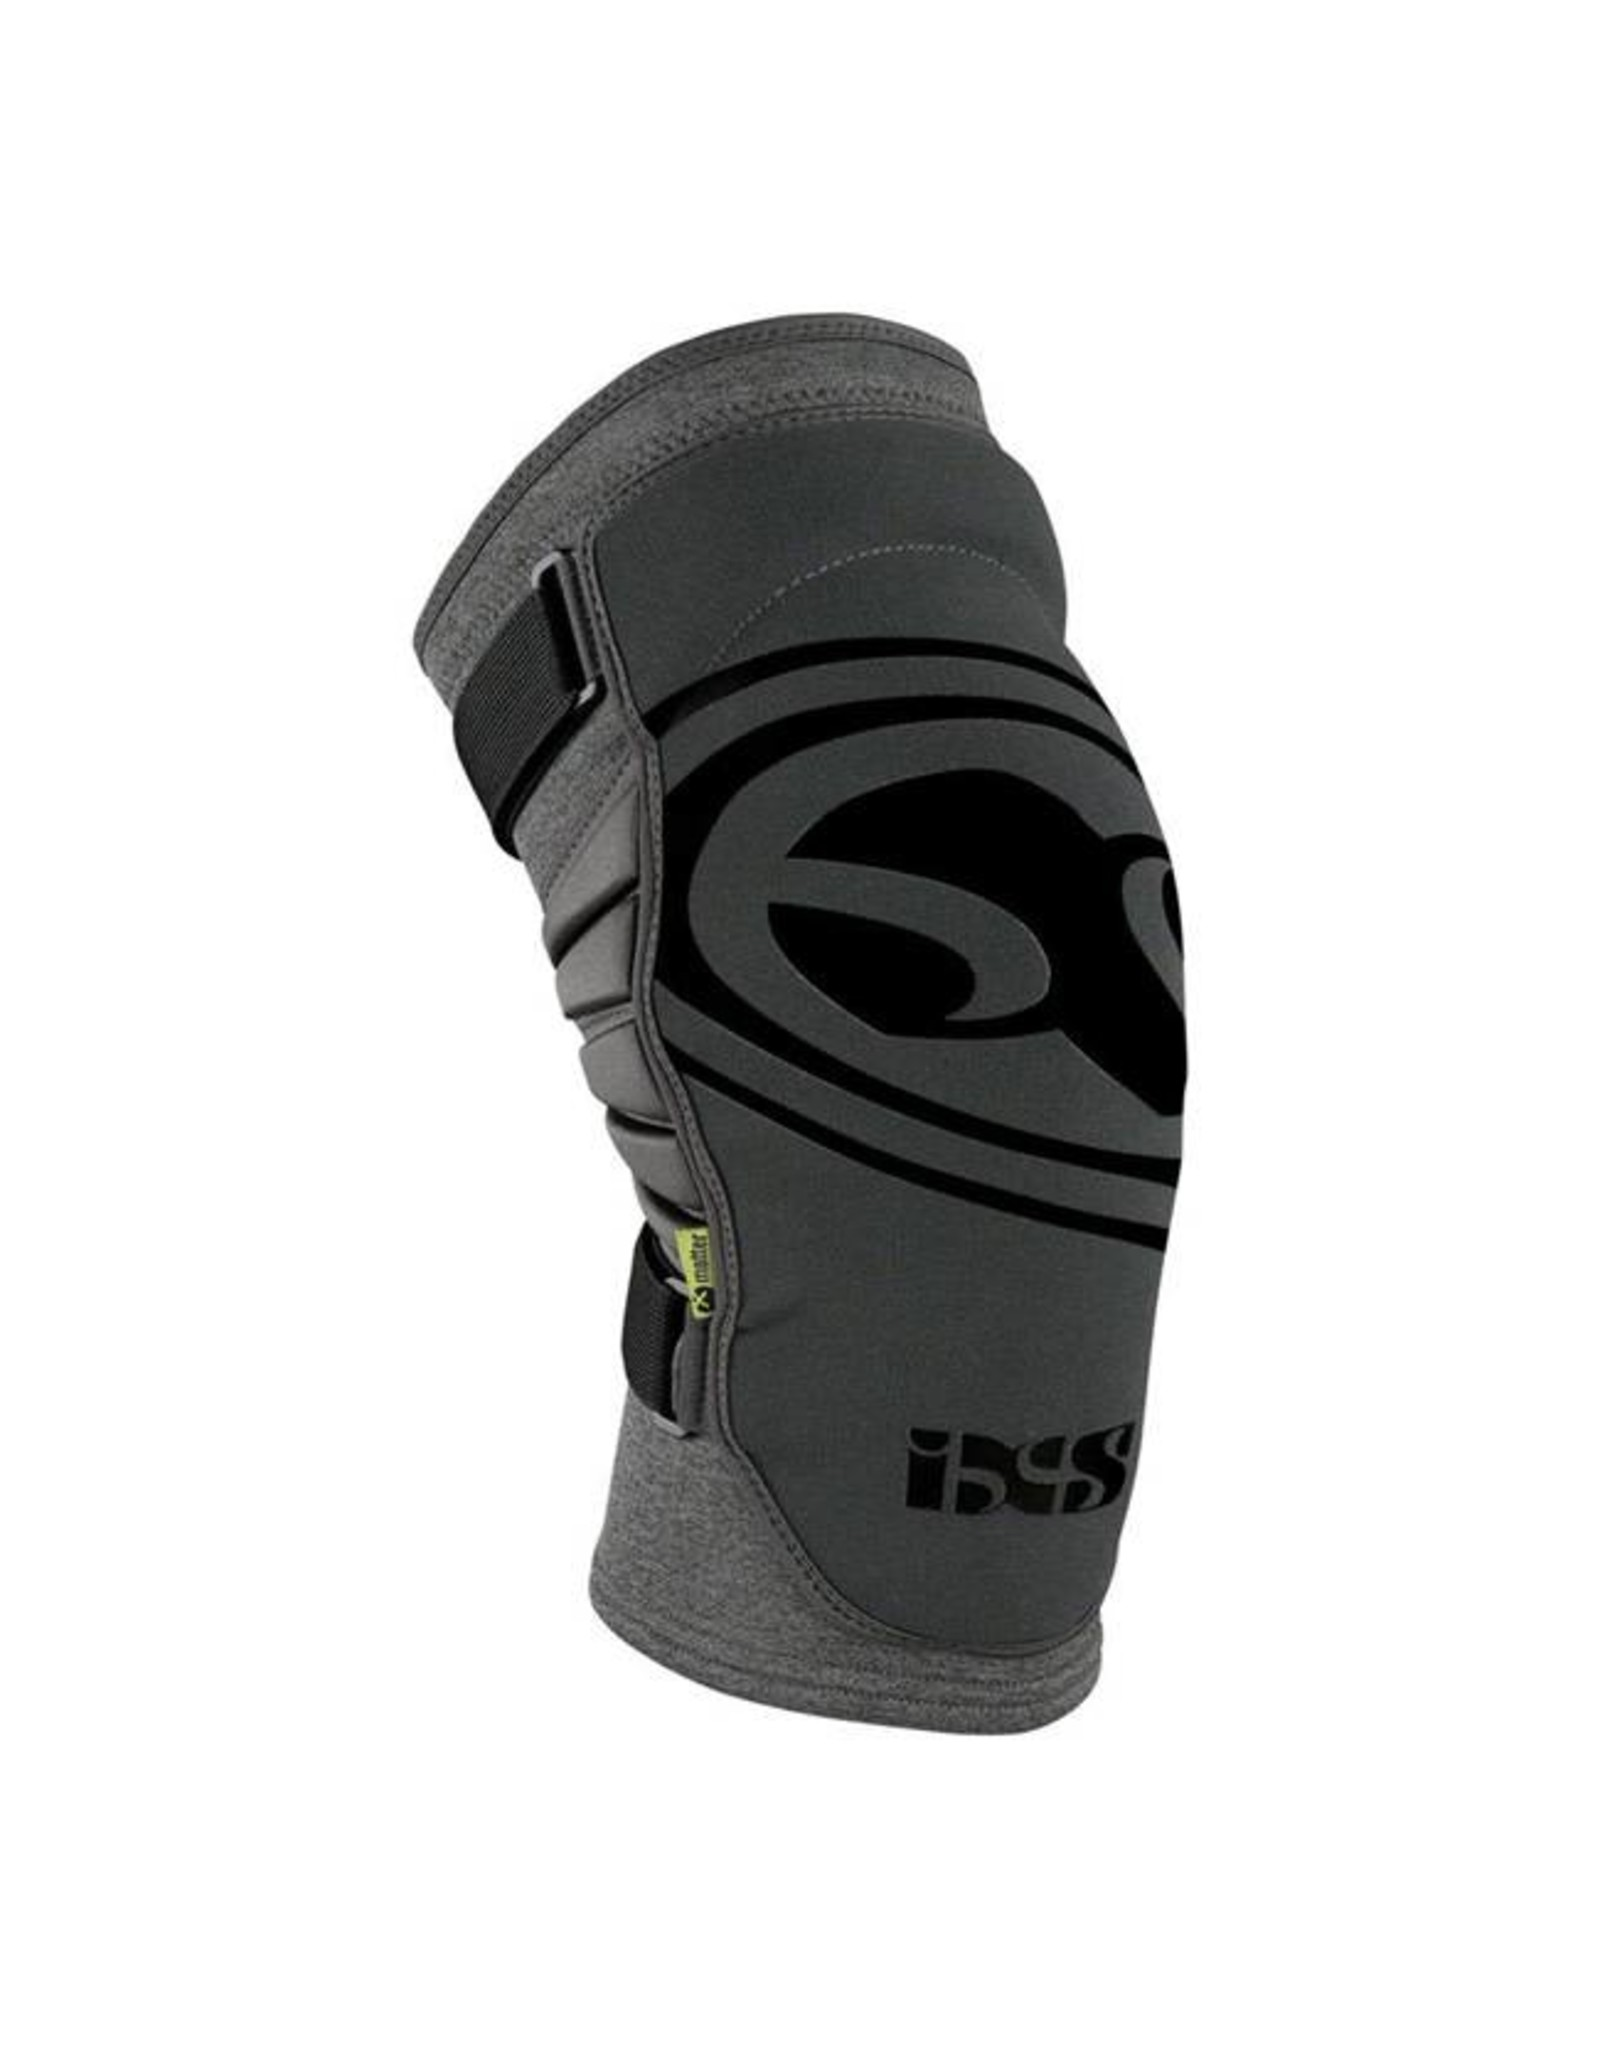 IXS iXS Carve Evo+ Knee Pads: Gray MD